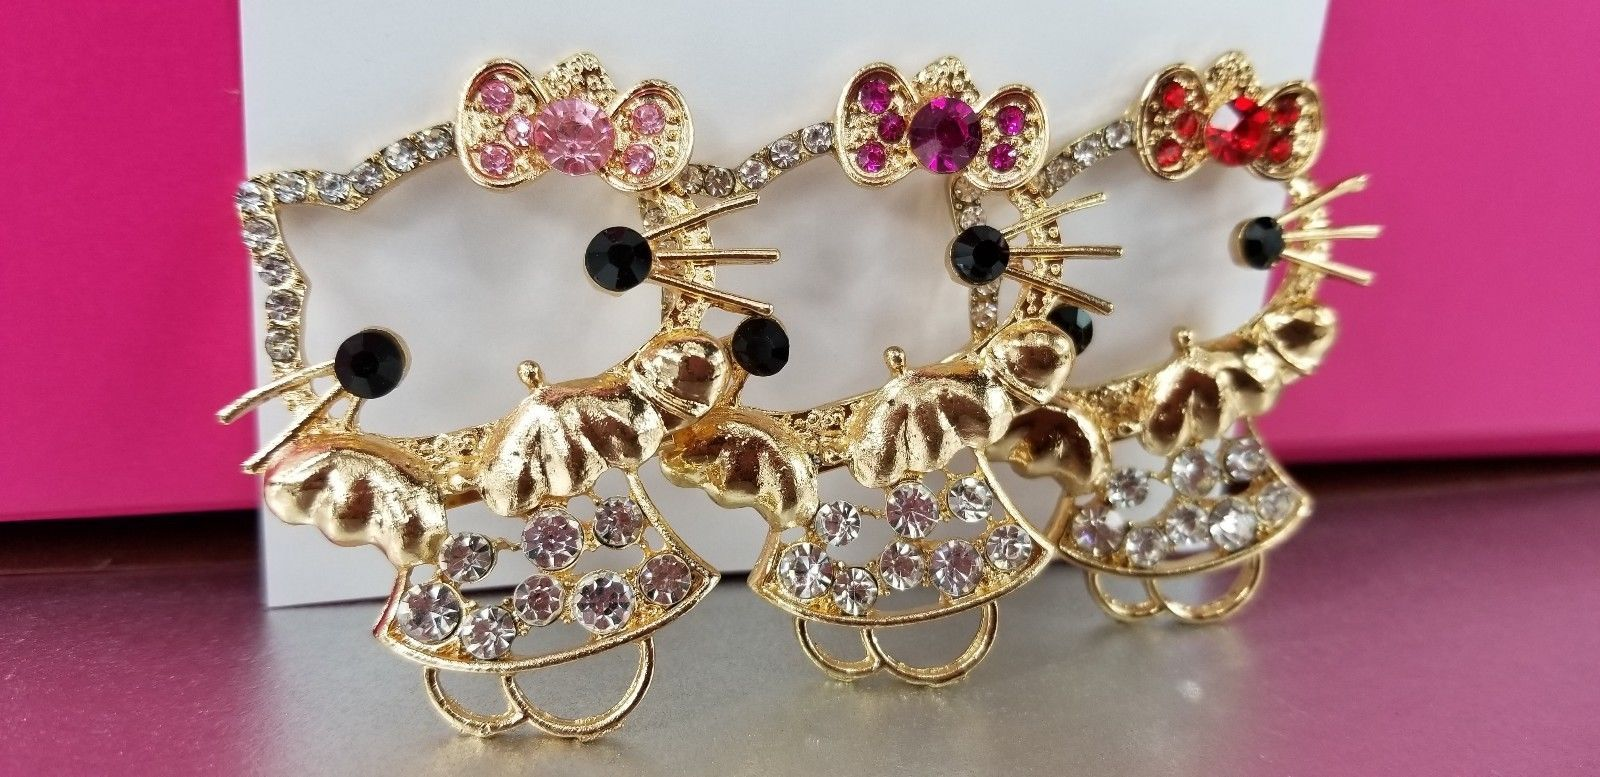 Primary image for Hello Kitty Crystal Pins 3 colors to choose from Free Standard Shipping